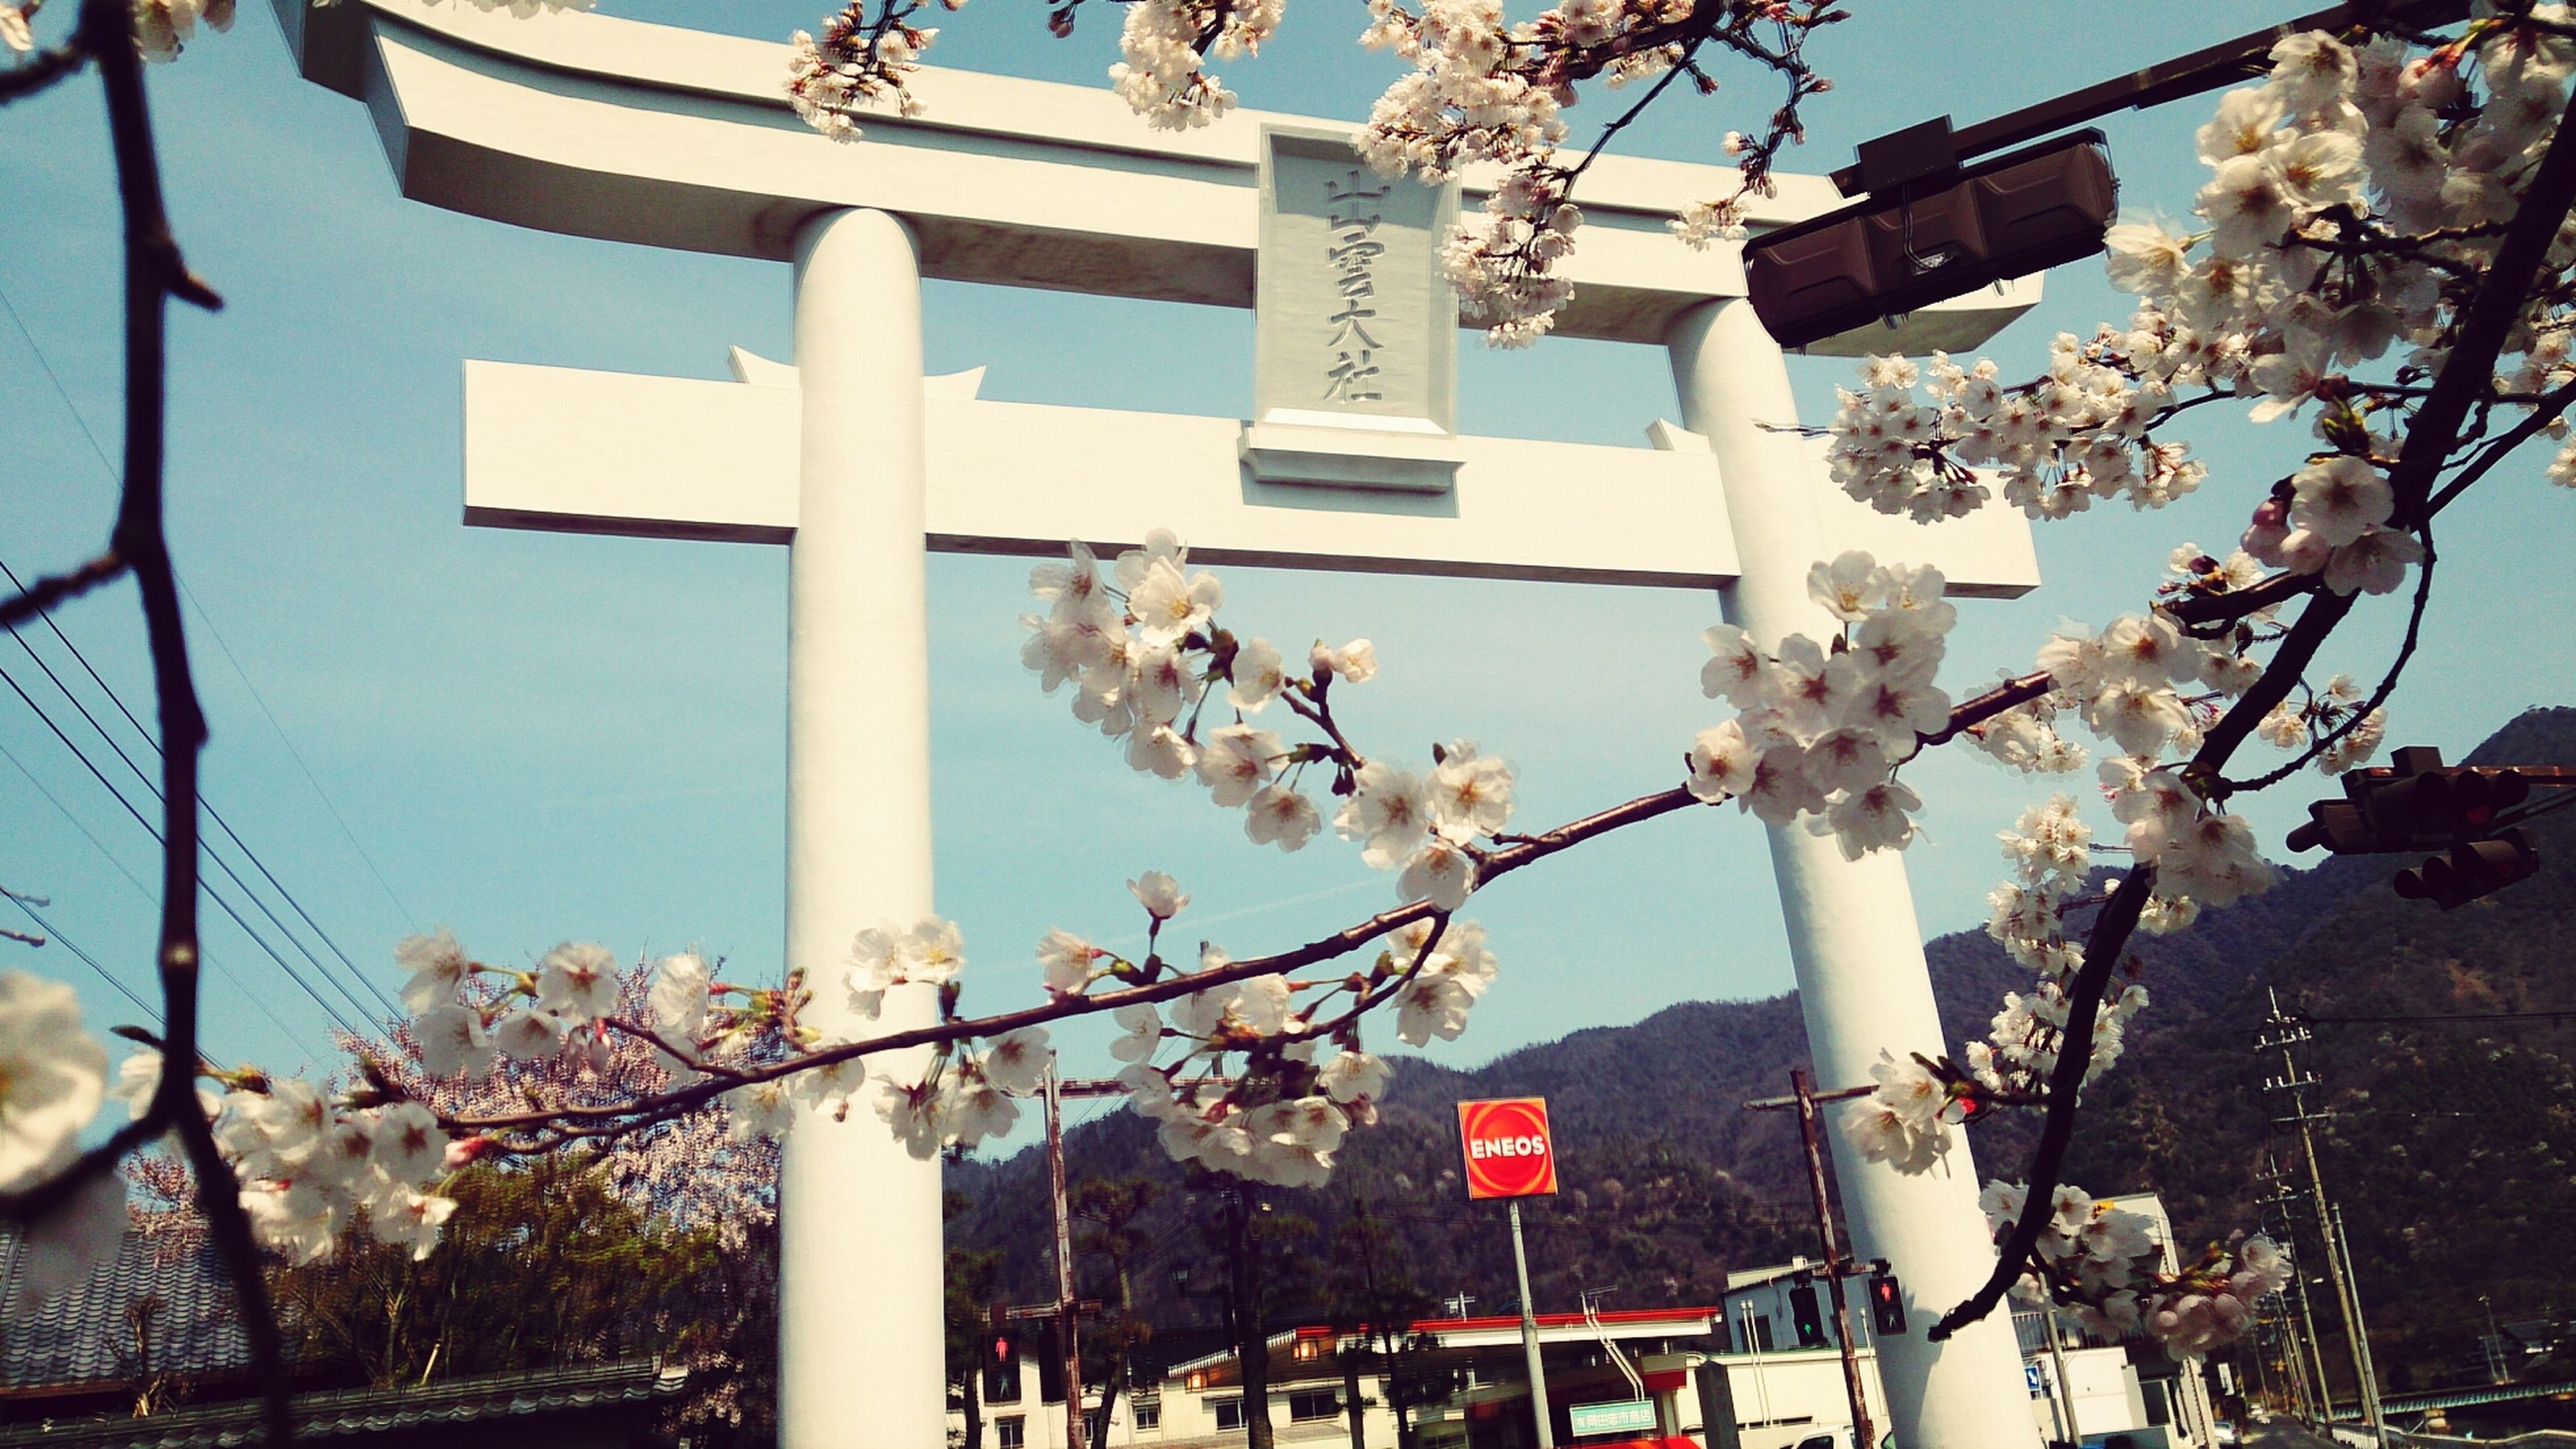 low angle view, tree, flower, branch, building exterior, built structure, architecture, hanging, city, growth, freshness, day, clear sky, outdoors, cherry blossom, sky, street light, cherry tree, no people, nature